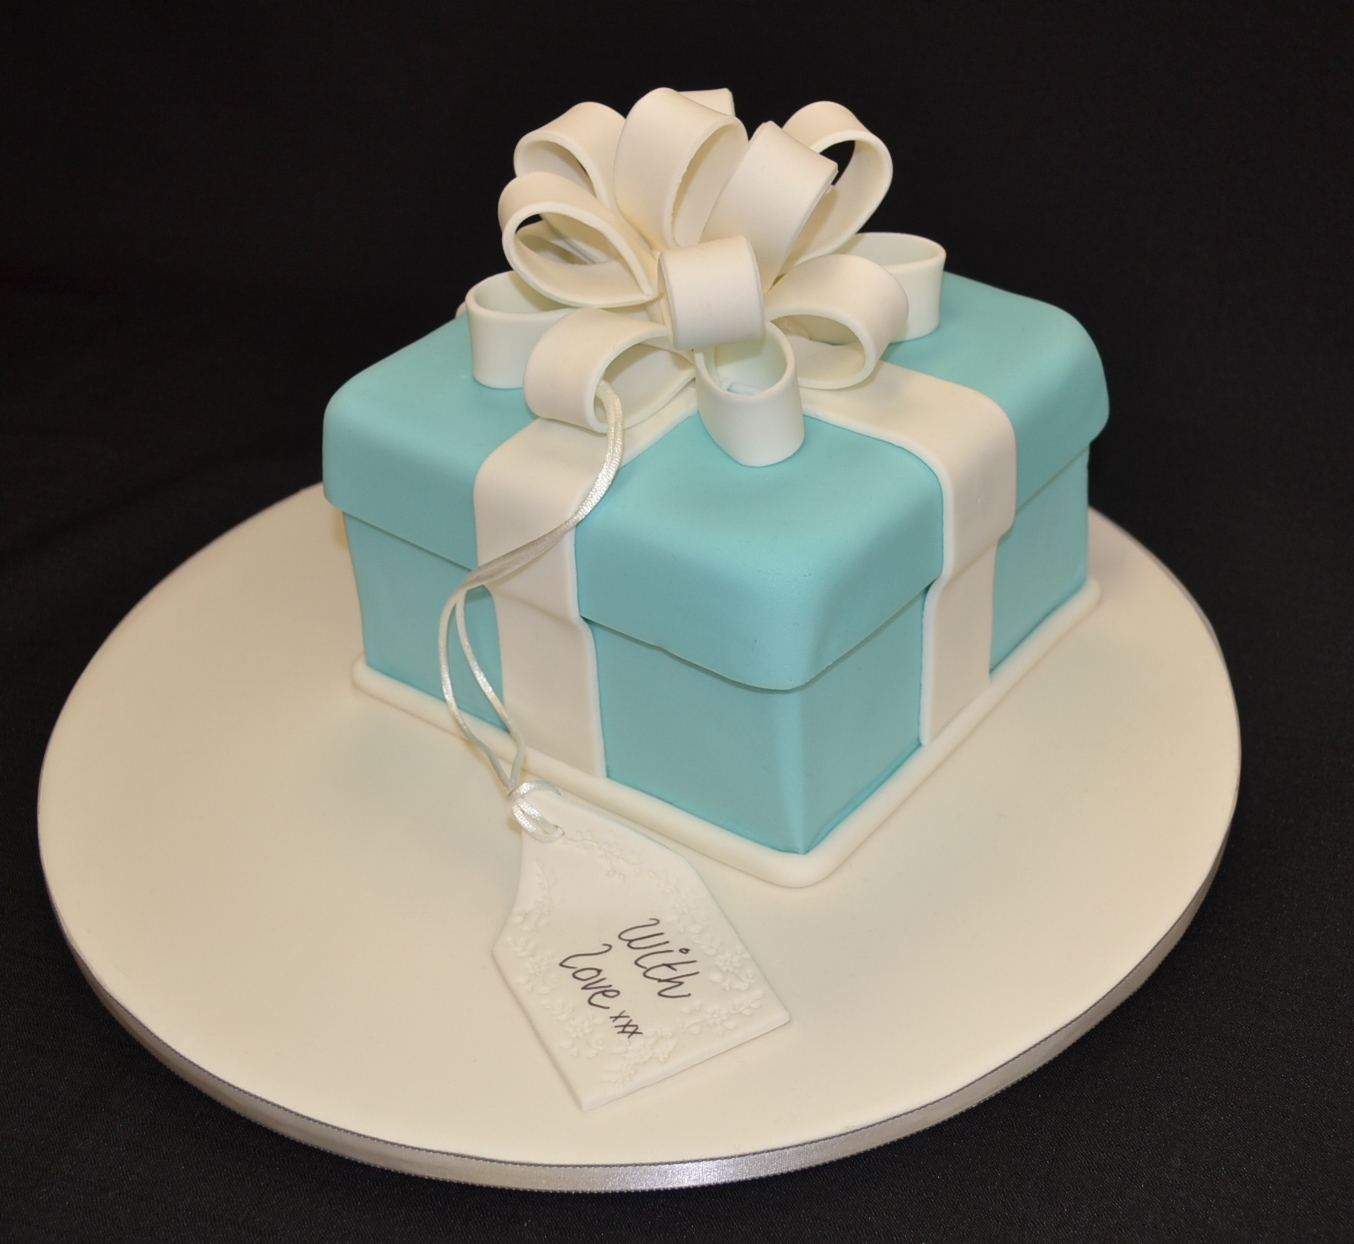 Cake Decorating Class Description : Sunday 1st of May 2016 Beginners 8 class Tiffany bow ...